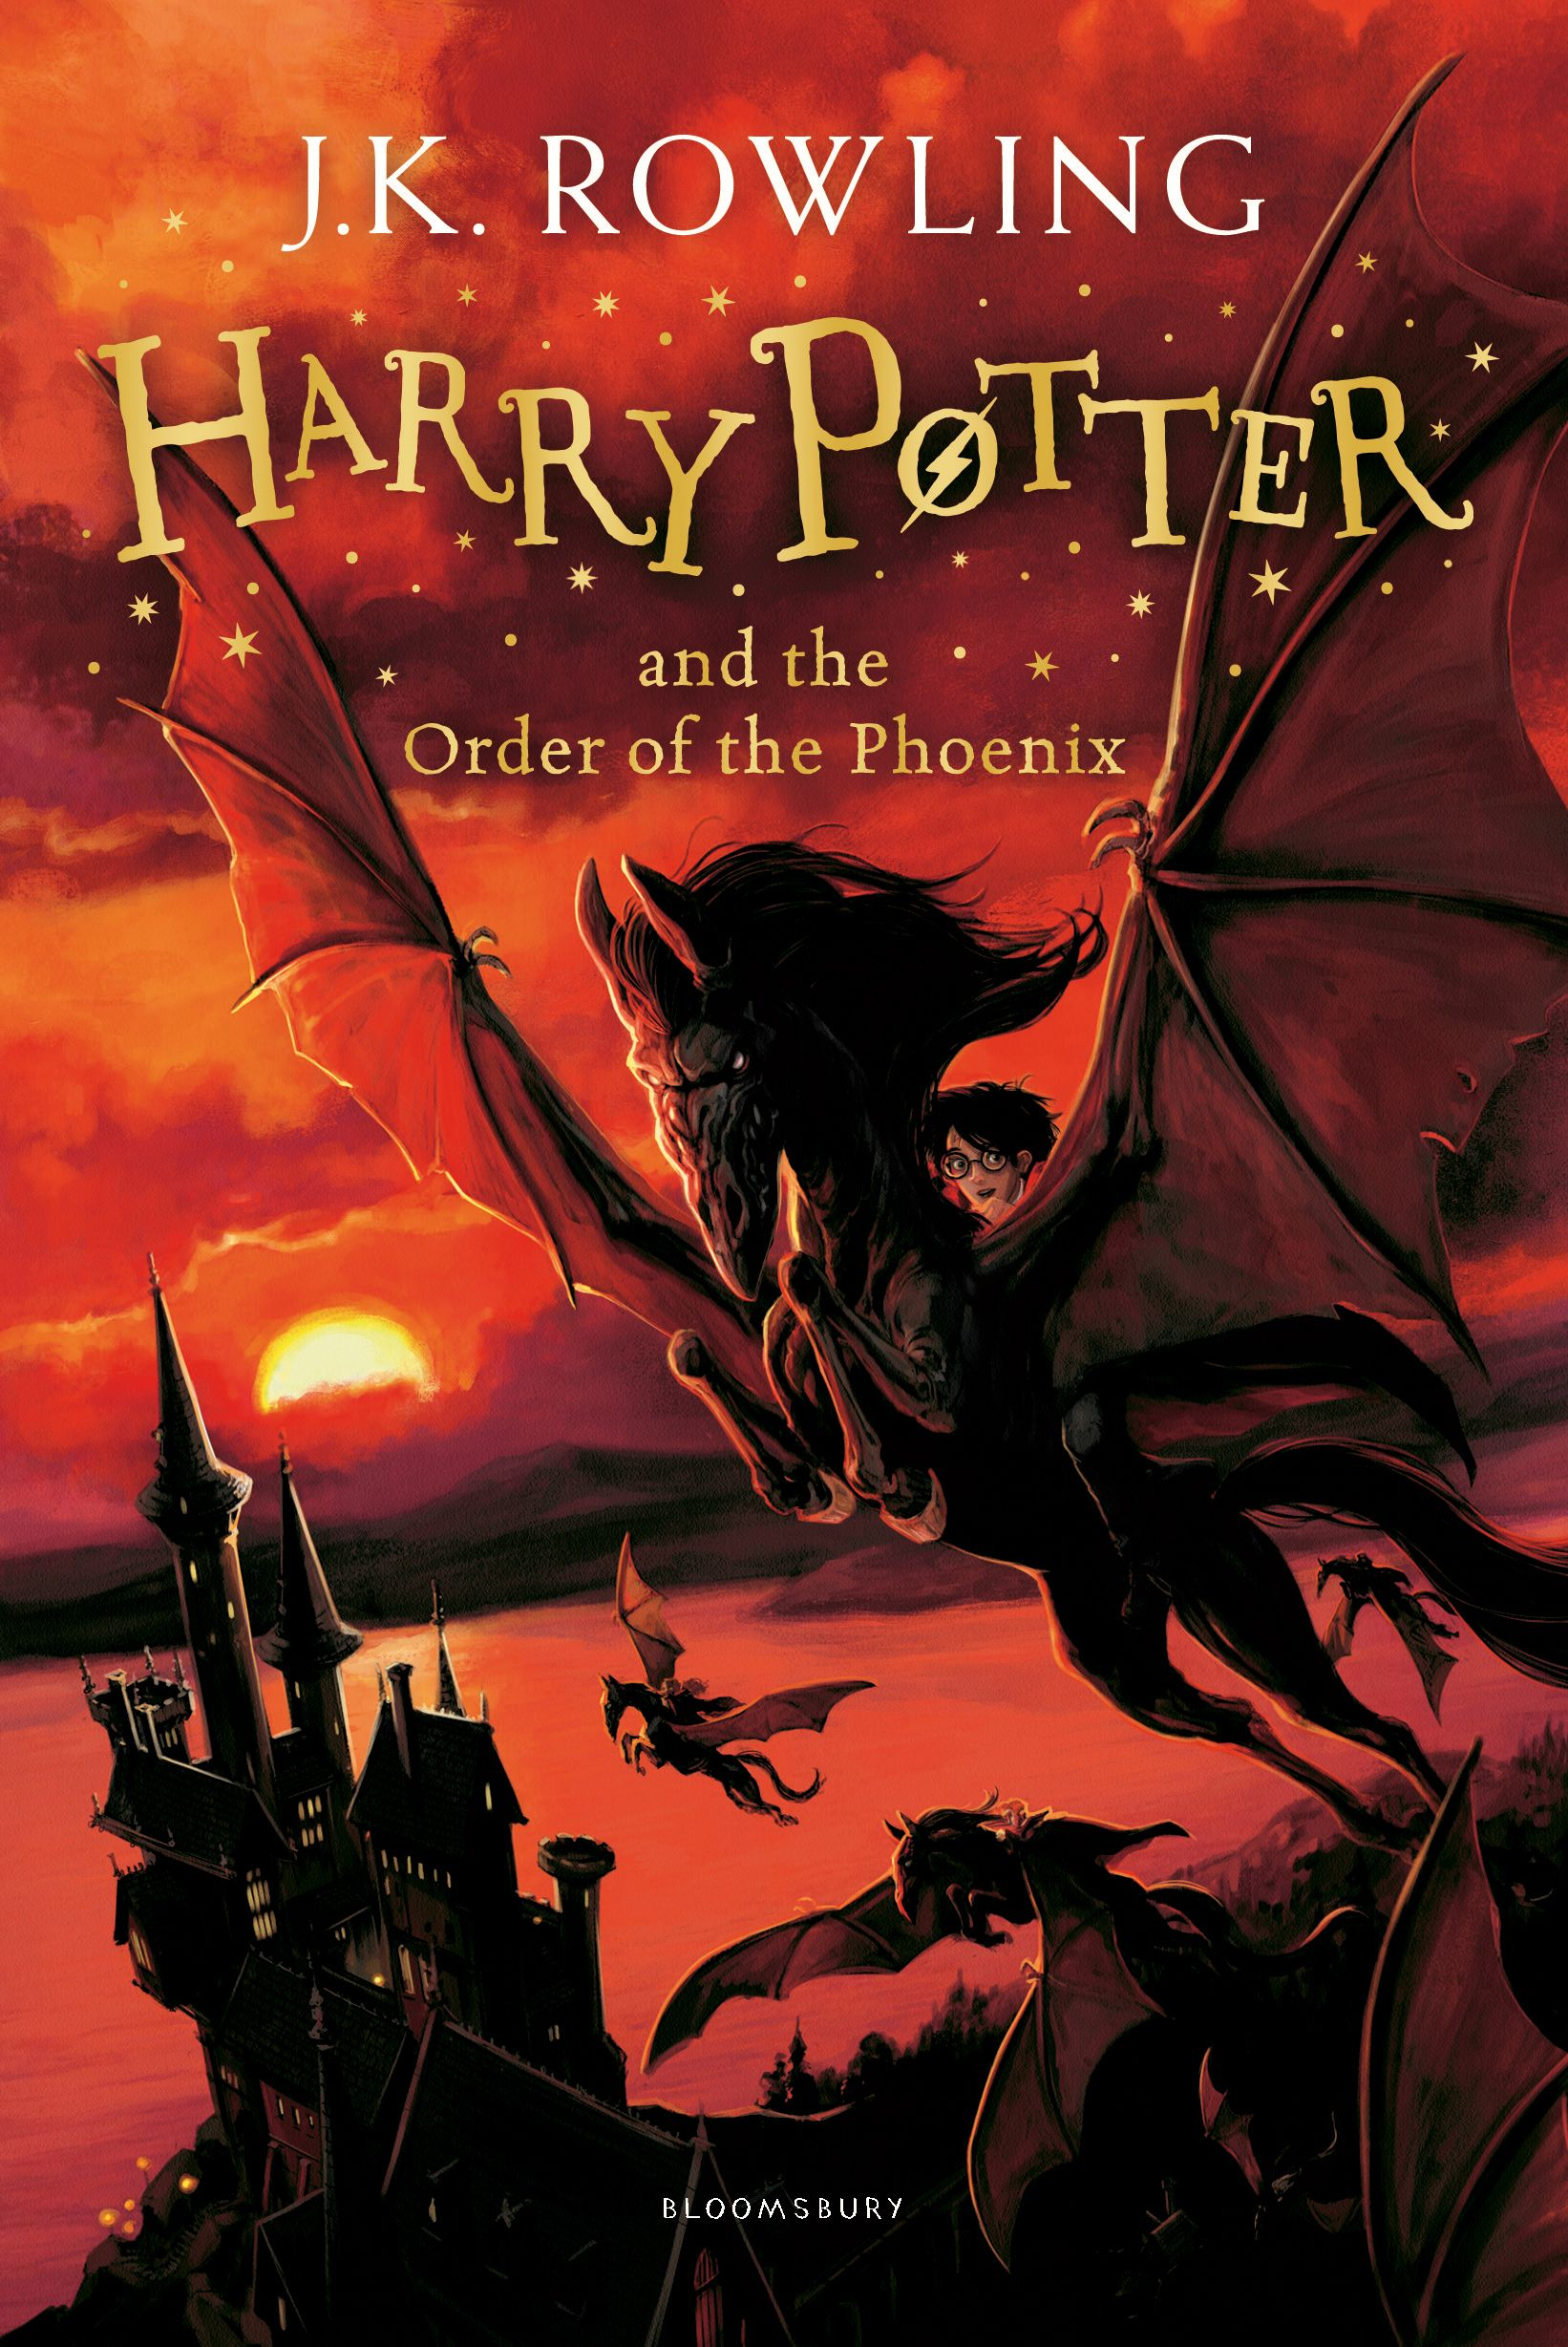 J K Rowling Harry Potter And The Order Of The Phoenix Awordfromjojo Fanta Cubiertas De Libros De Harry Potter Libros De Harry Potter La Orden Del Fenix